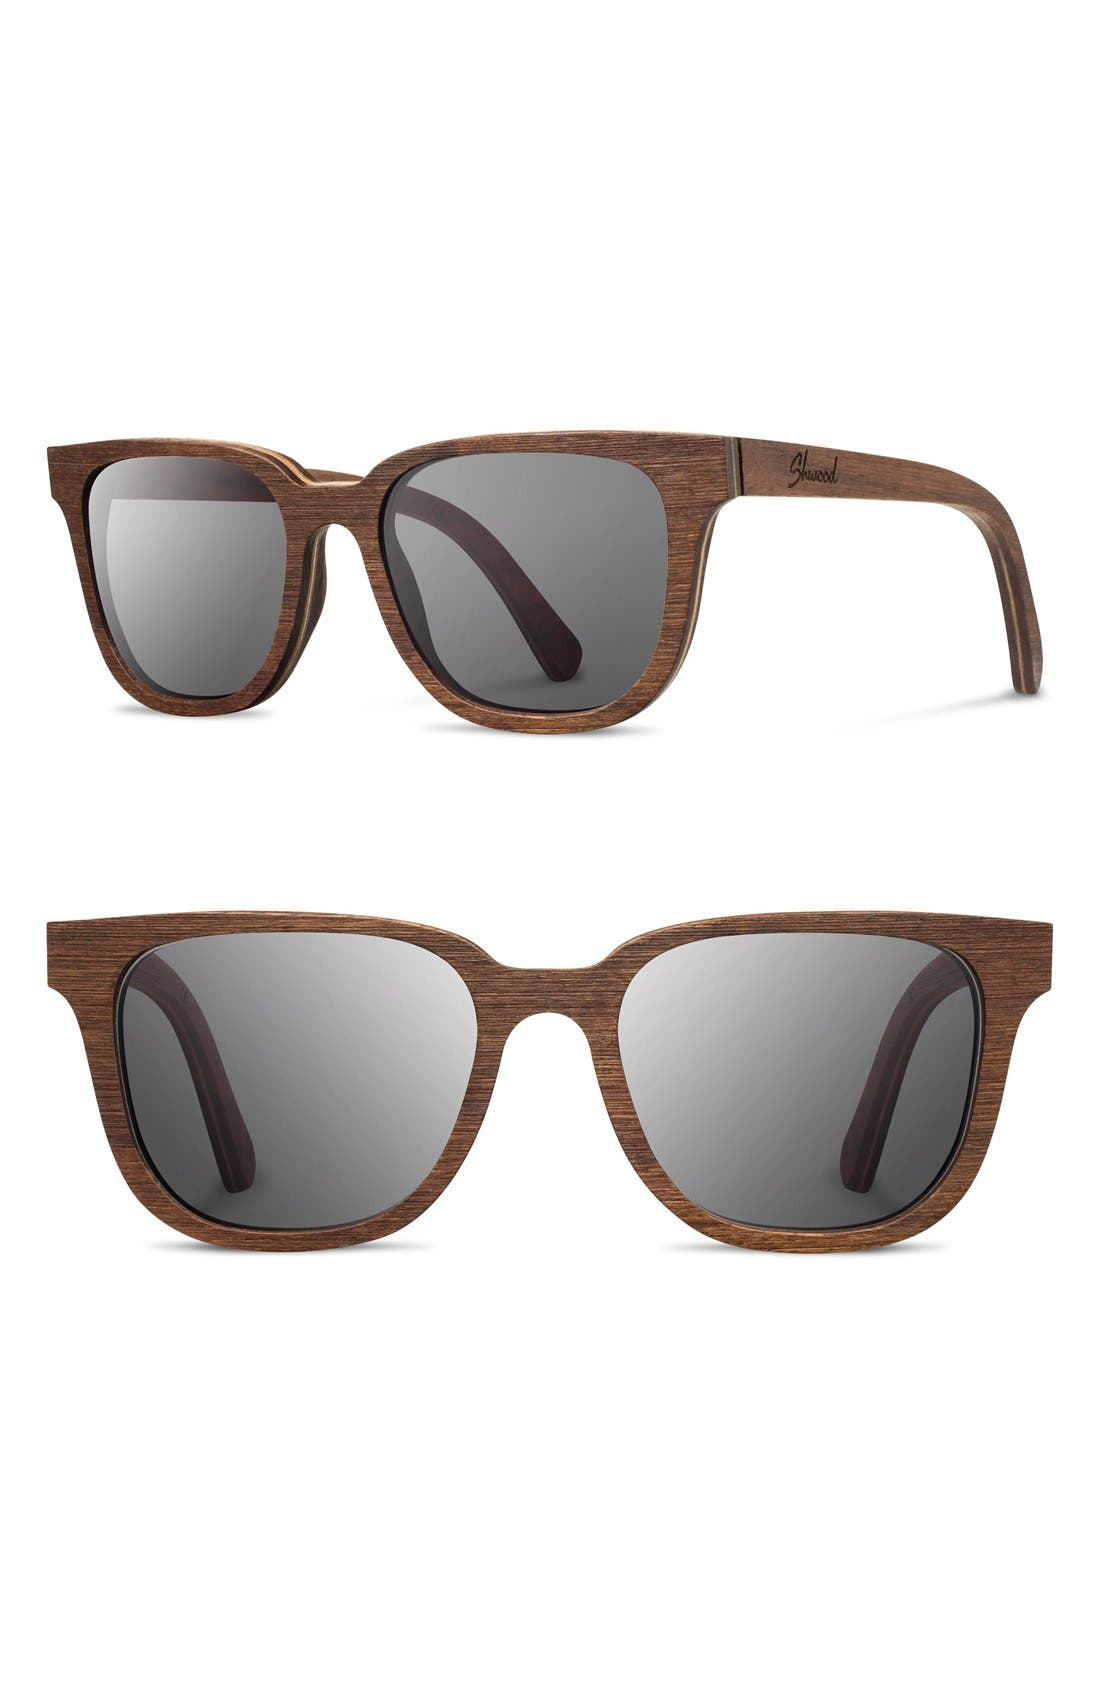 SHWOOD Prescott 52mm Wood Sunglasses